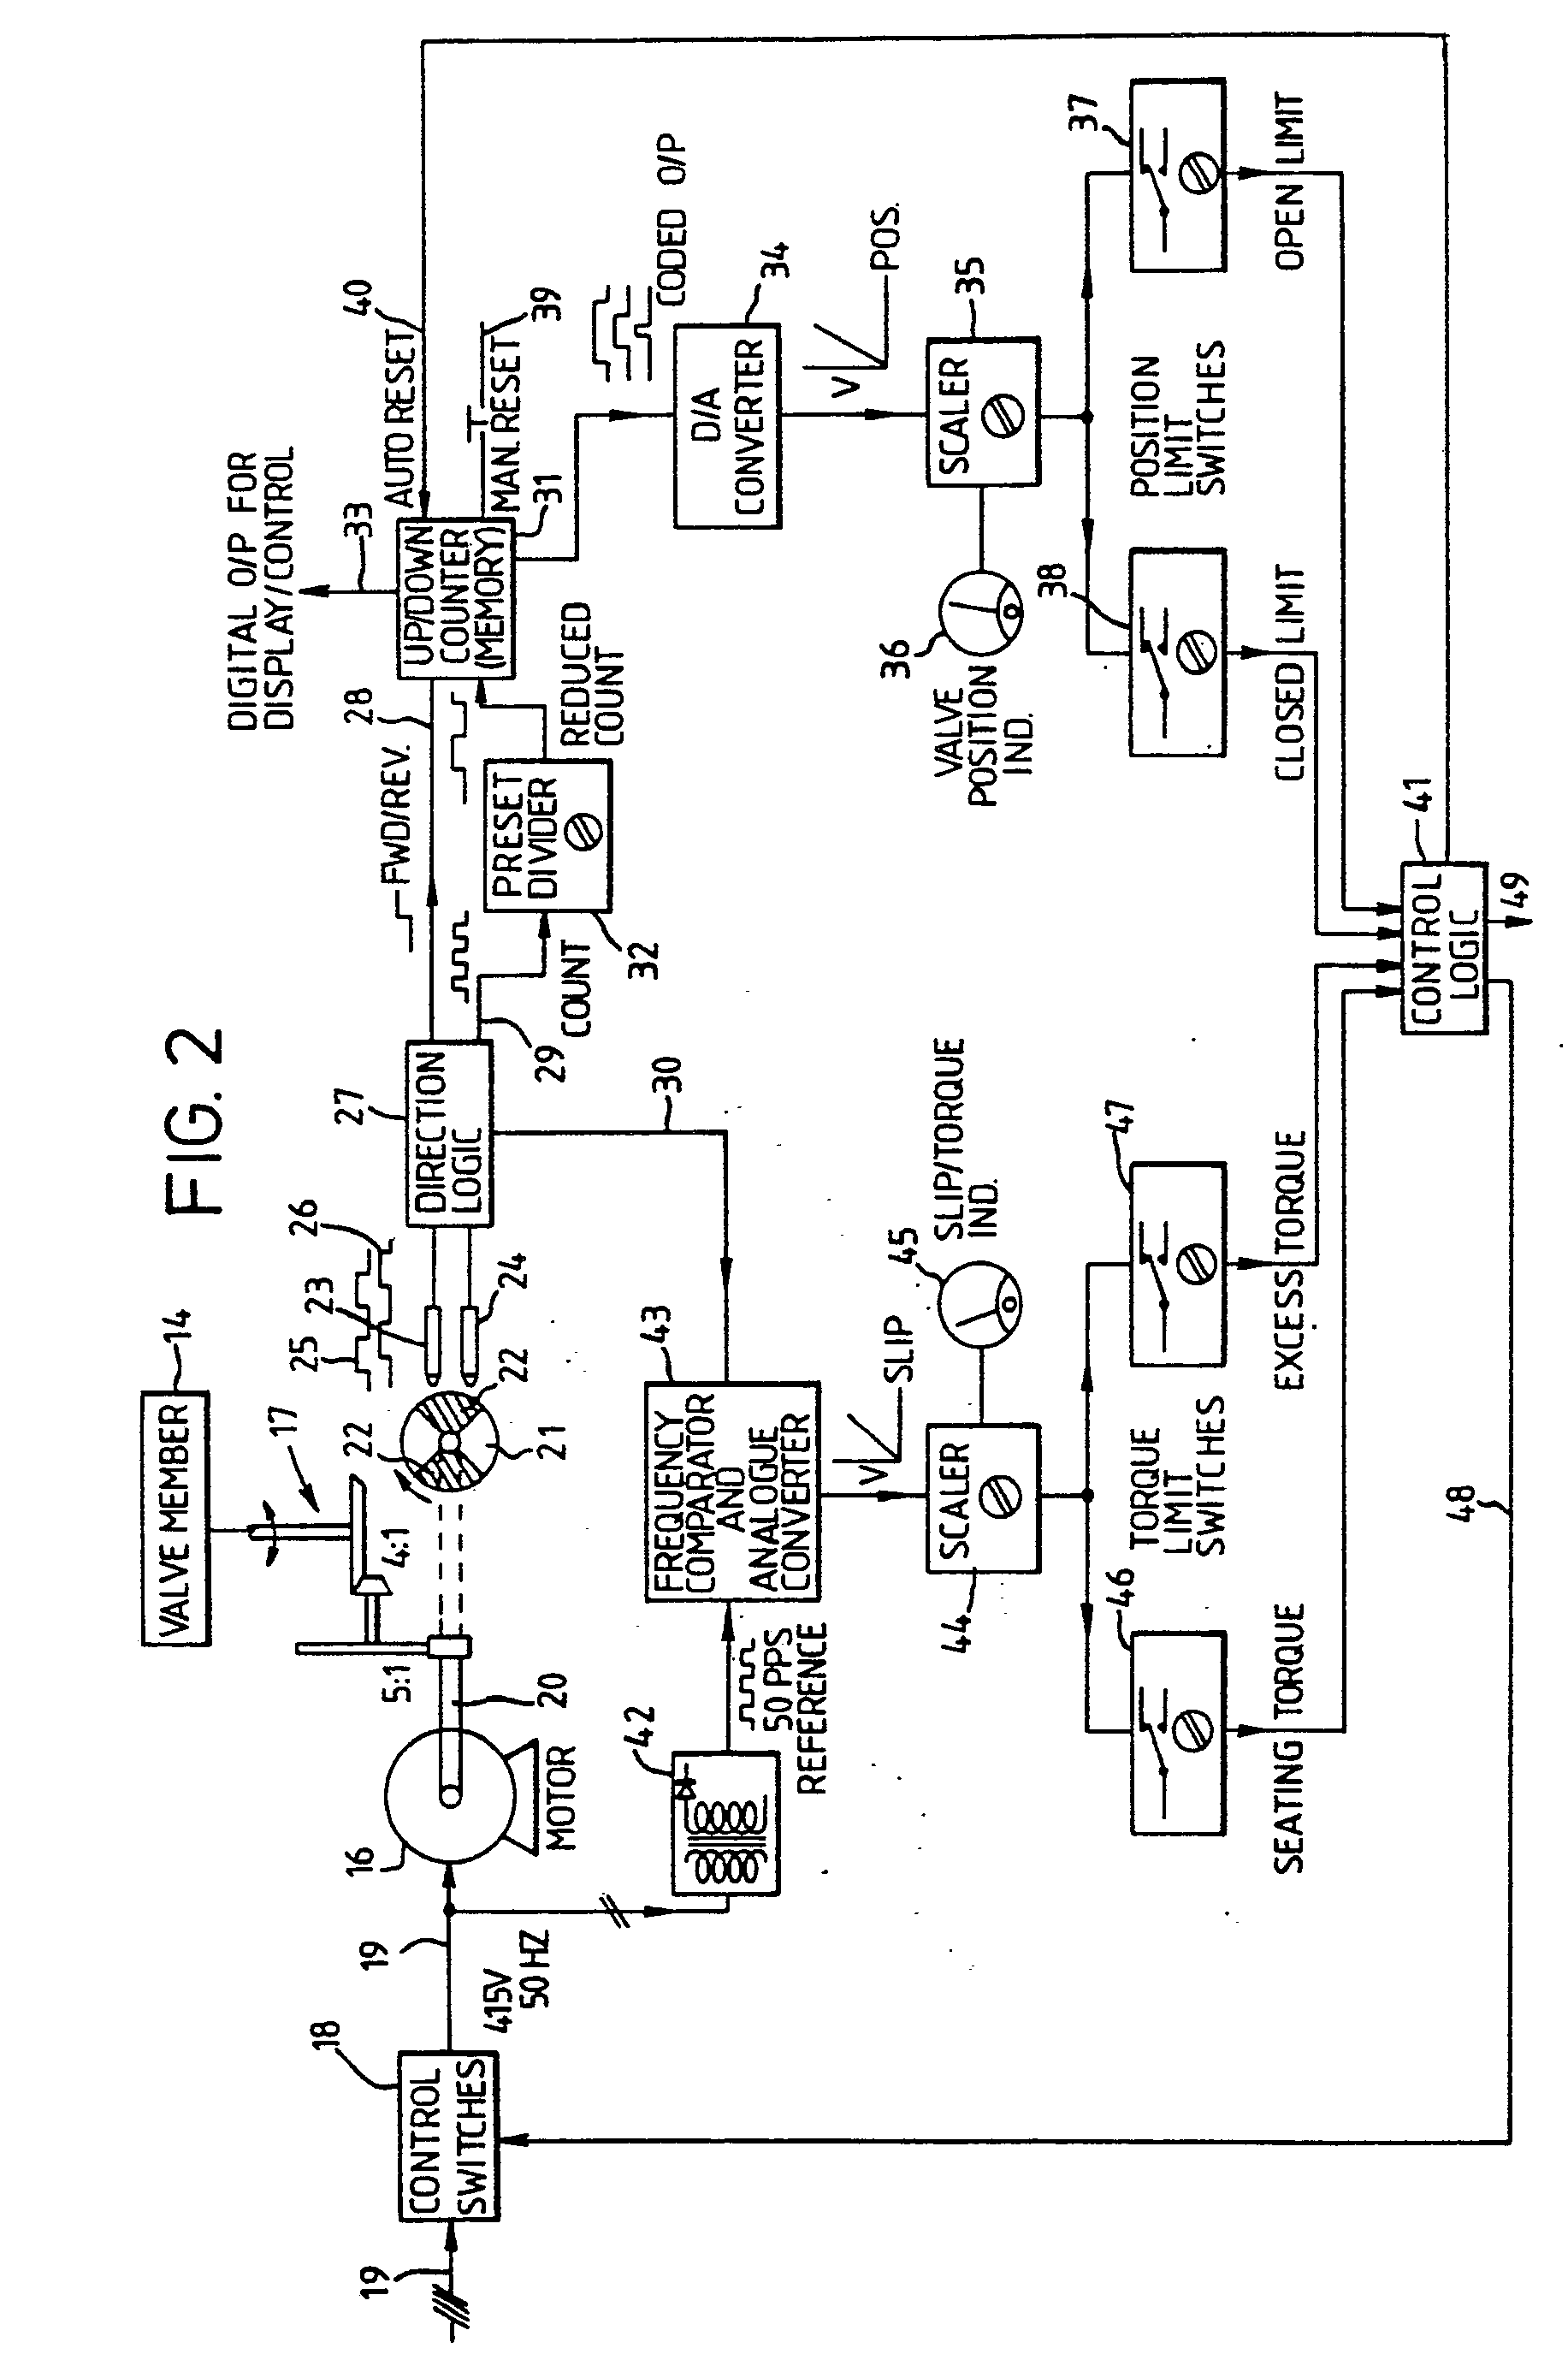 wiring diagram limitorque mx 10 patent ep0050960b1 motor operated valve google patents  patent ep0050960b1 motor operated valve google patents